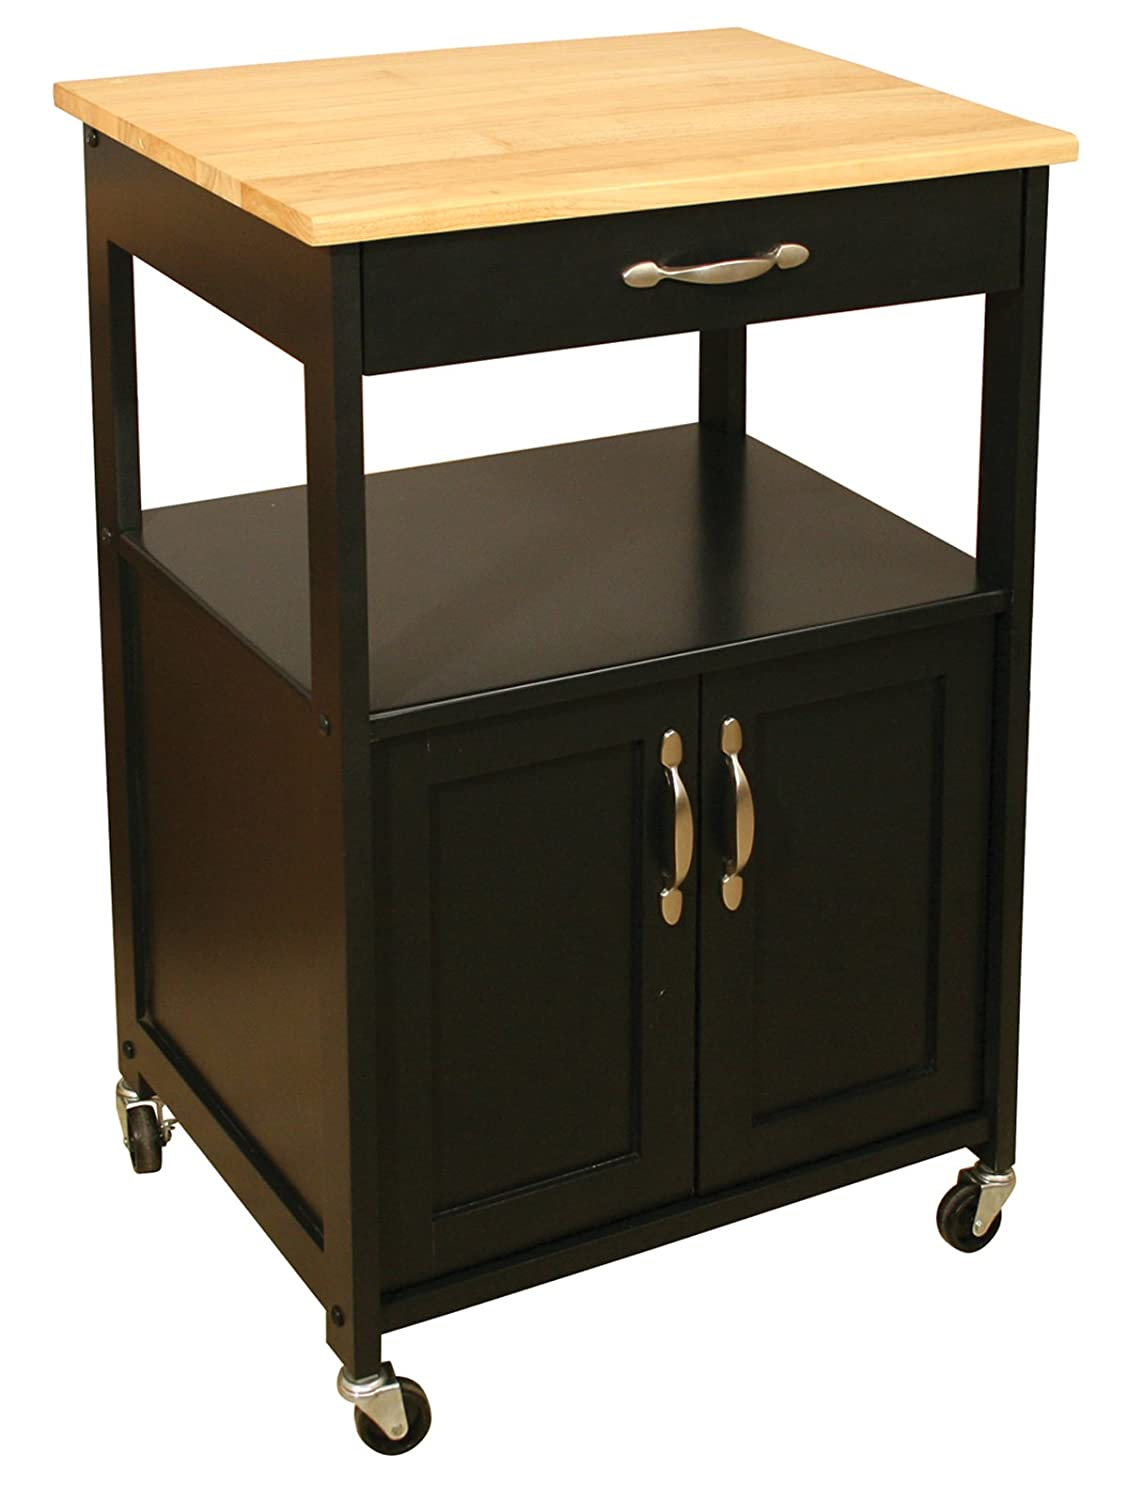 Catskill Craftsmen Kitchen Trolley, Black Base/Natural Top